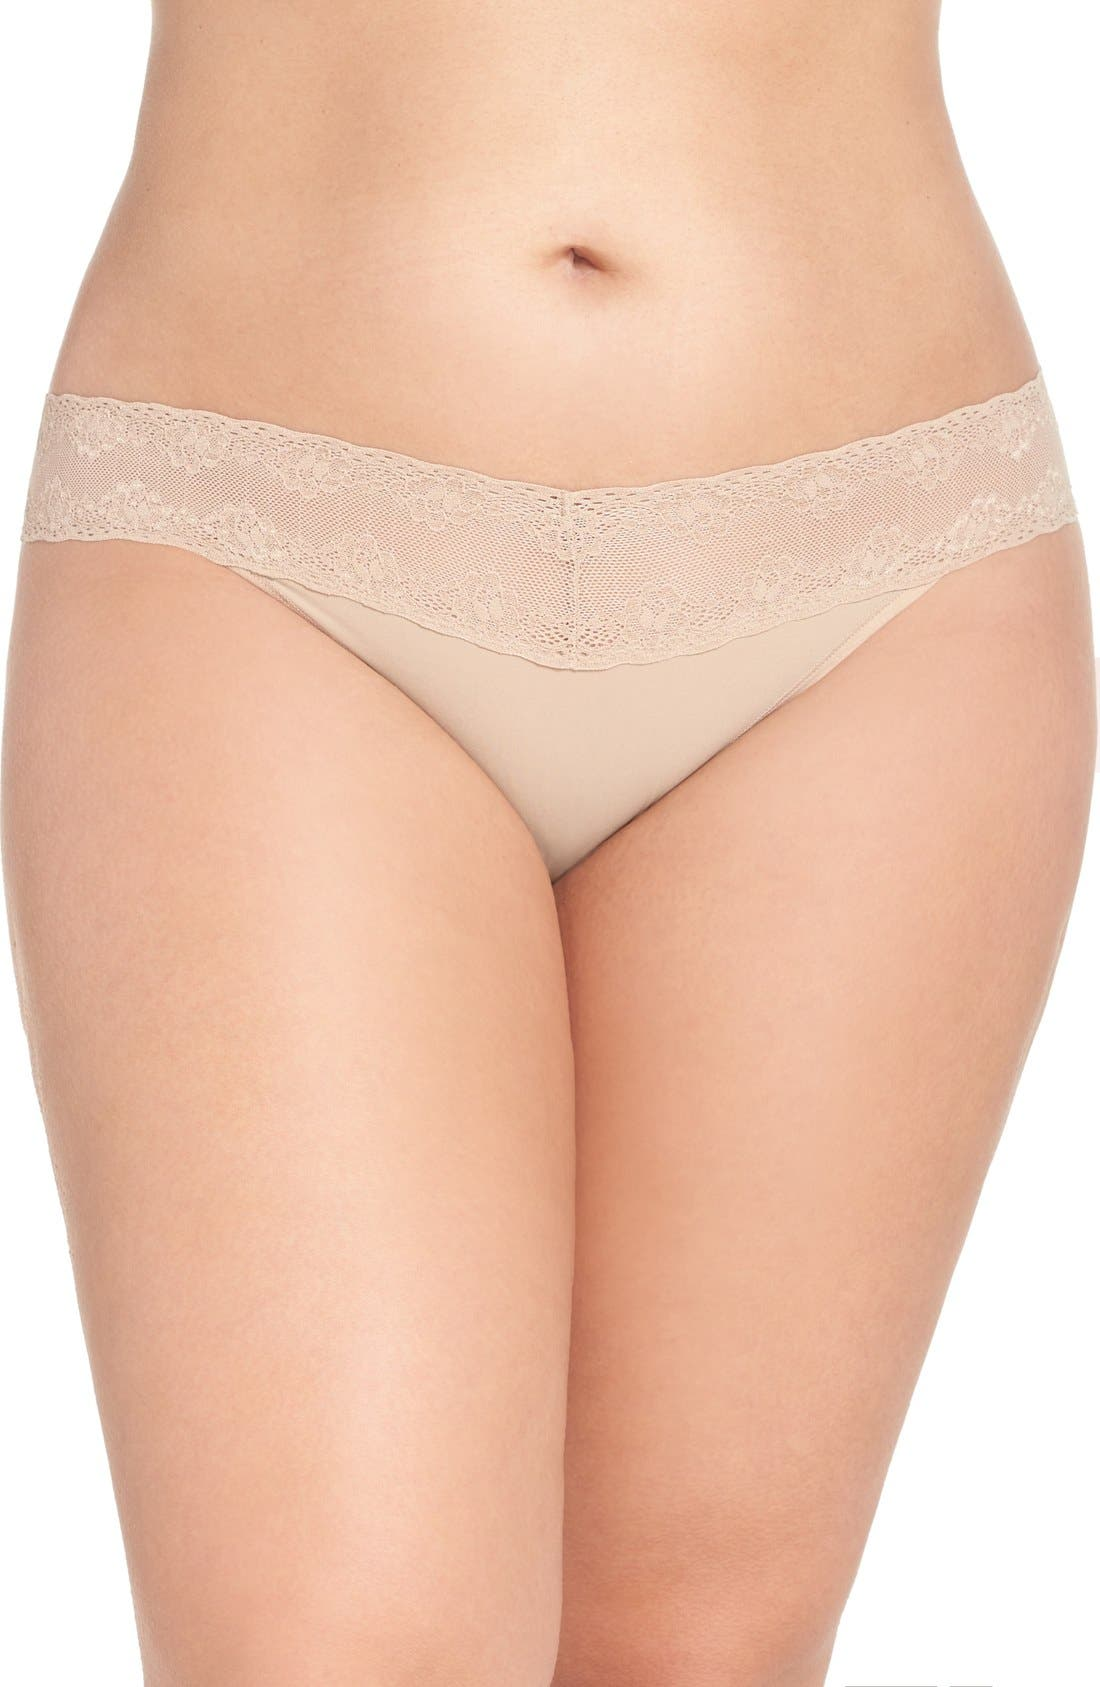 Bliss Perfection Thong,                         Main,                         color, 250